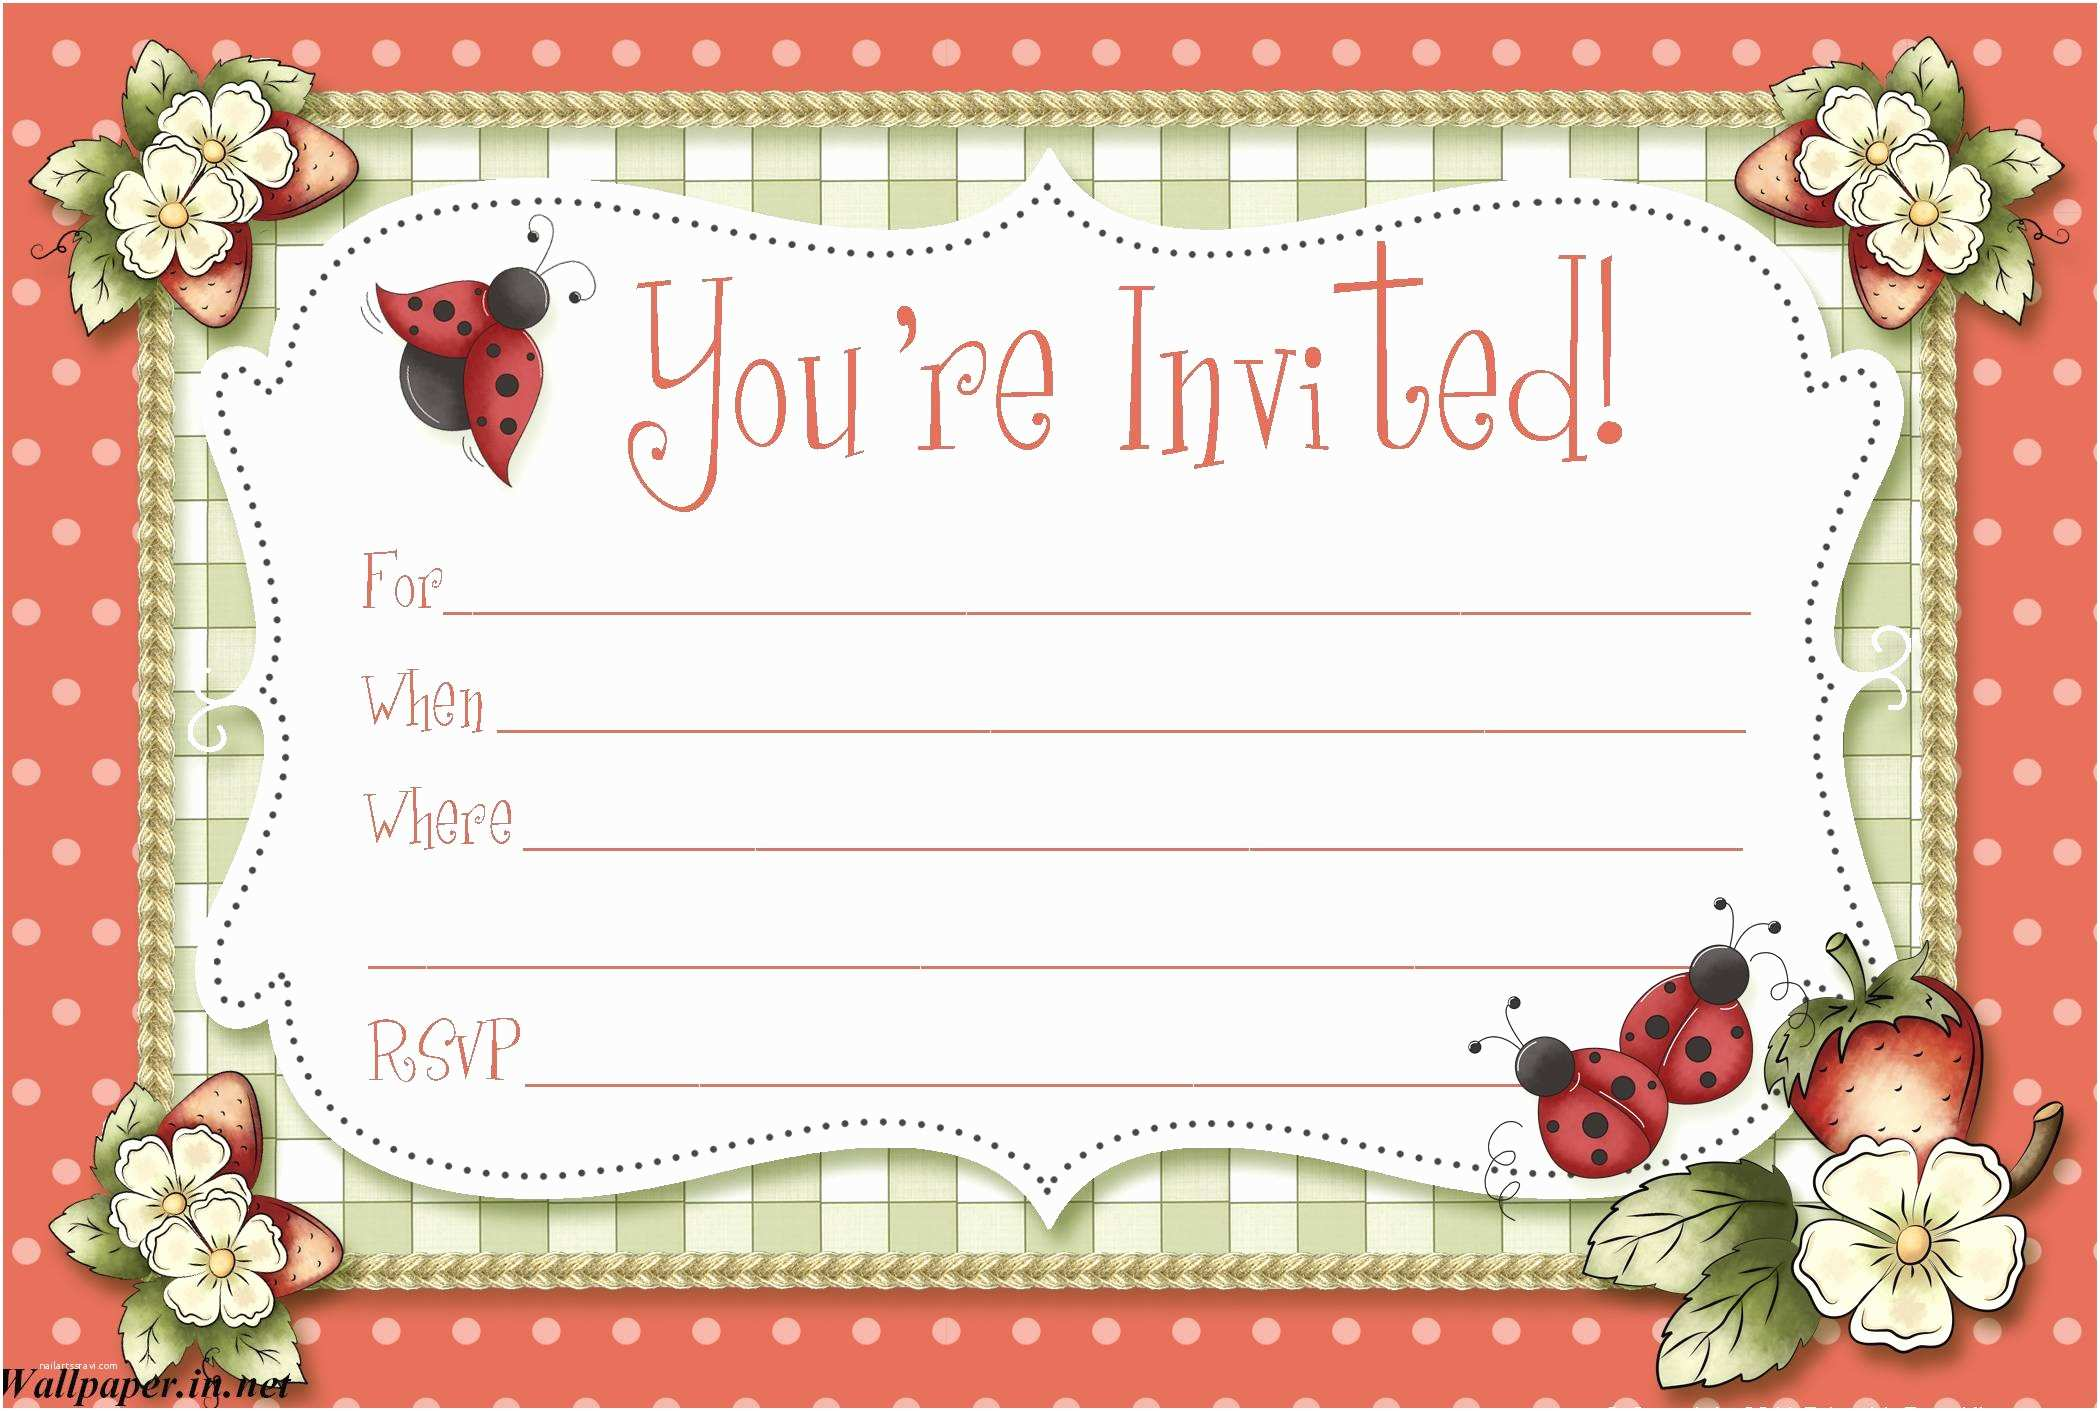 Free Christmas Party Invitations Holiday Party Invitation Template Free – Gangcraft